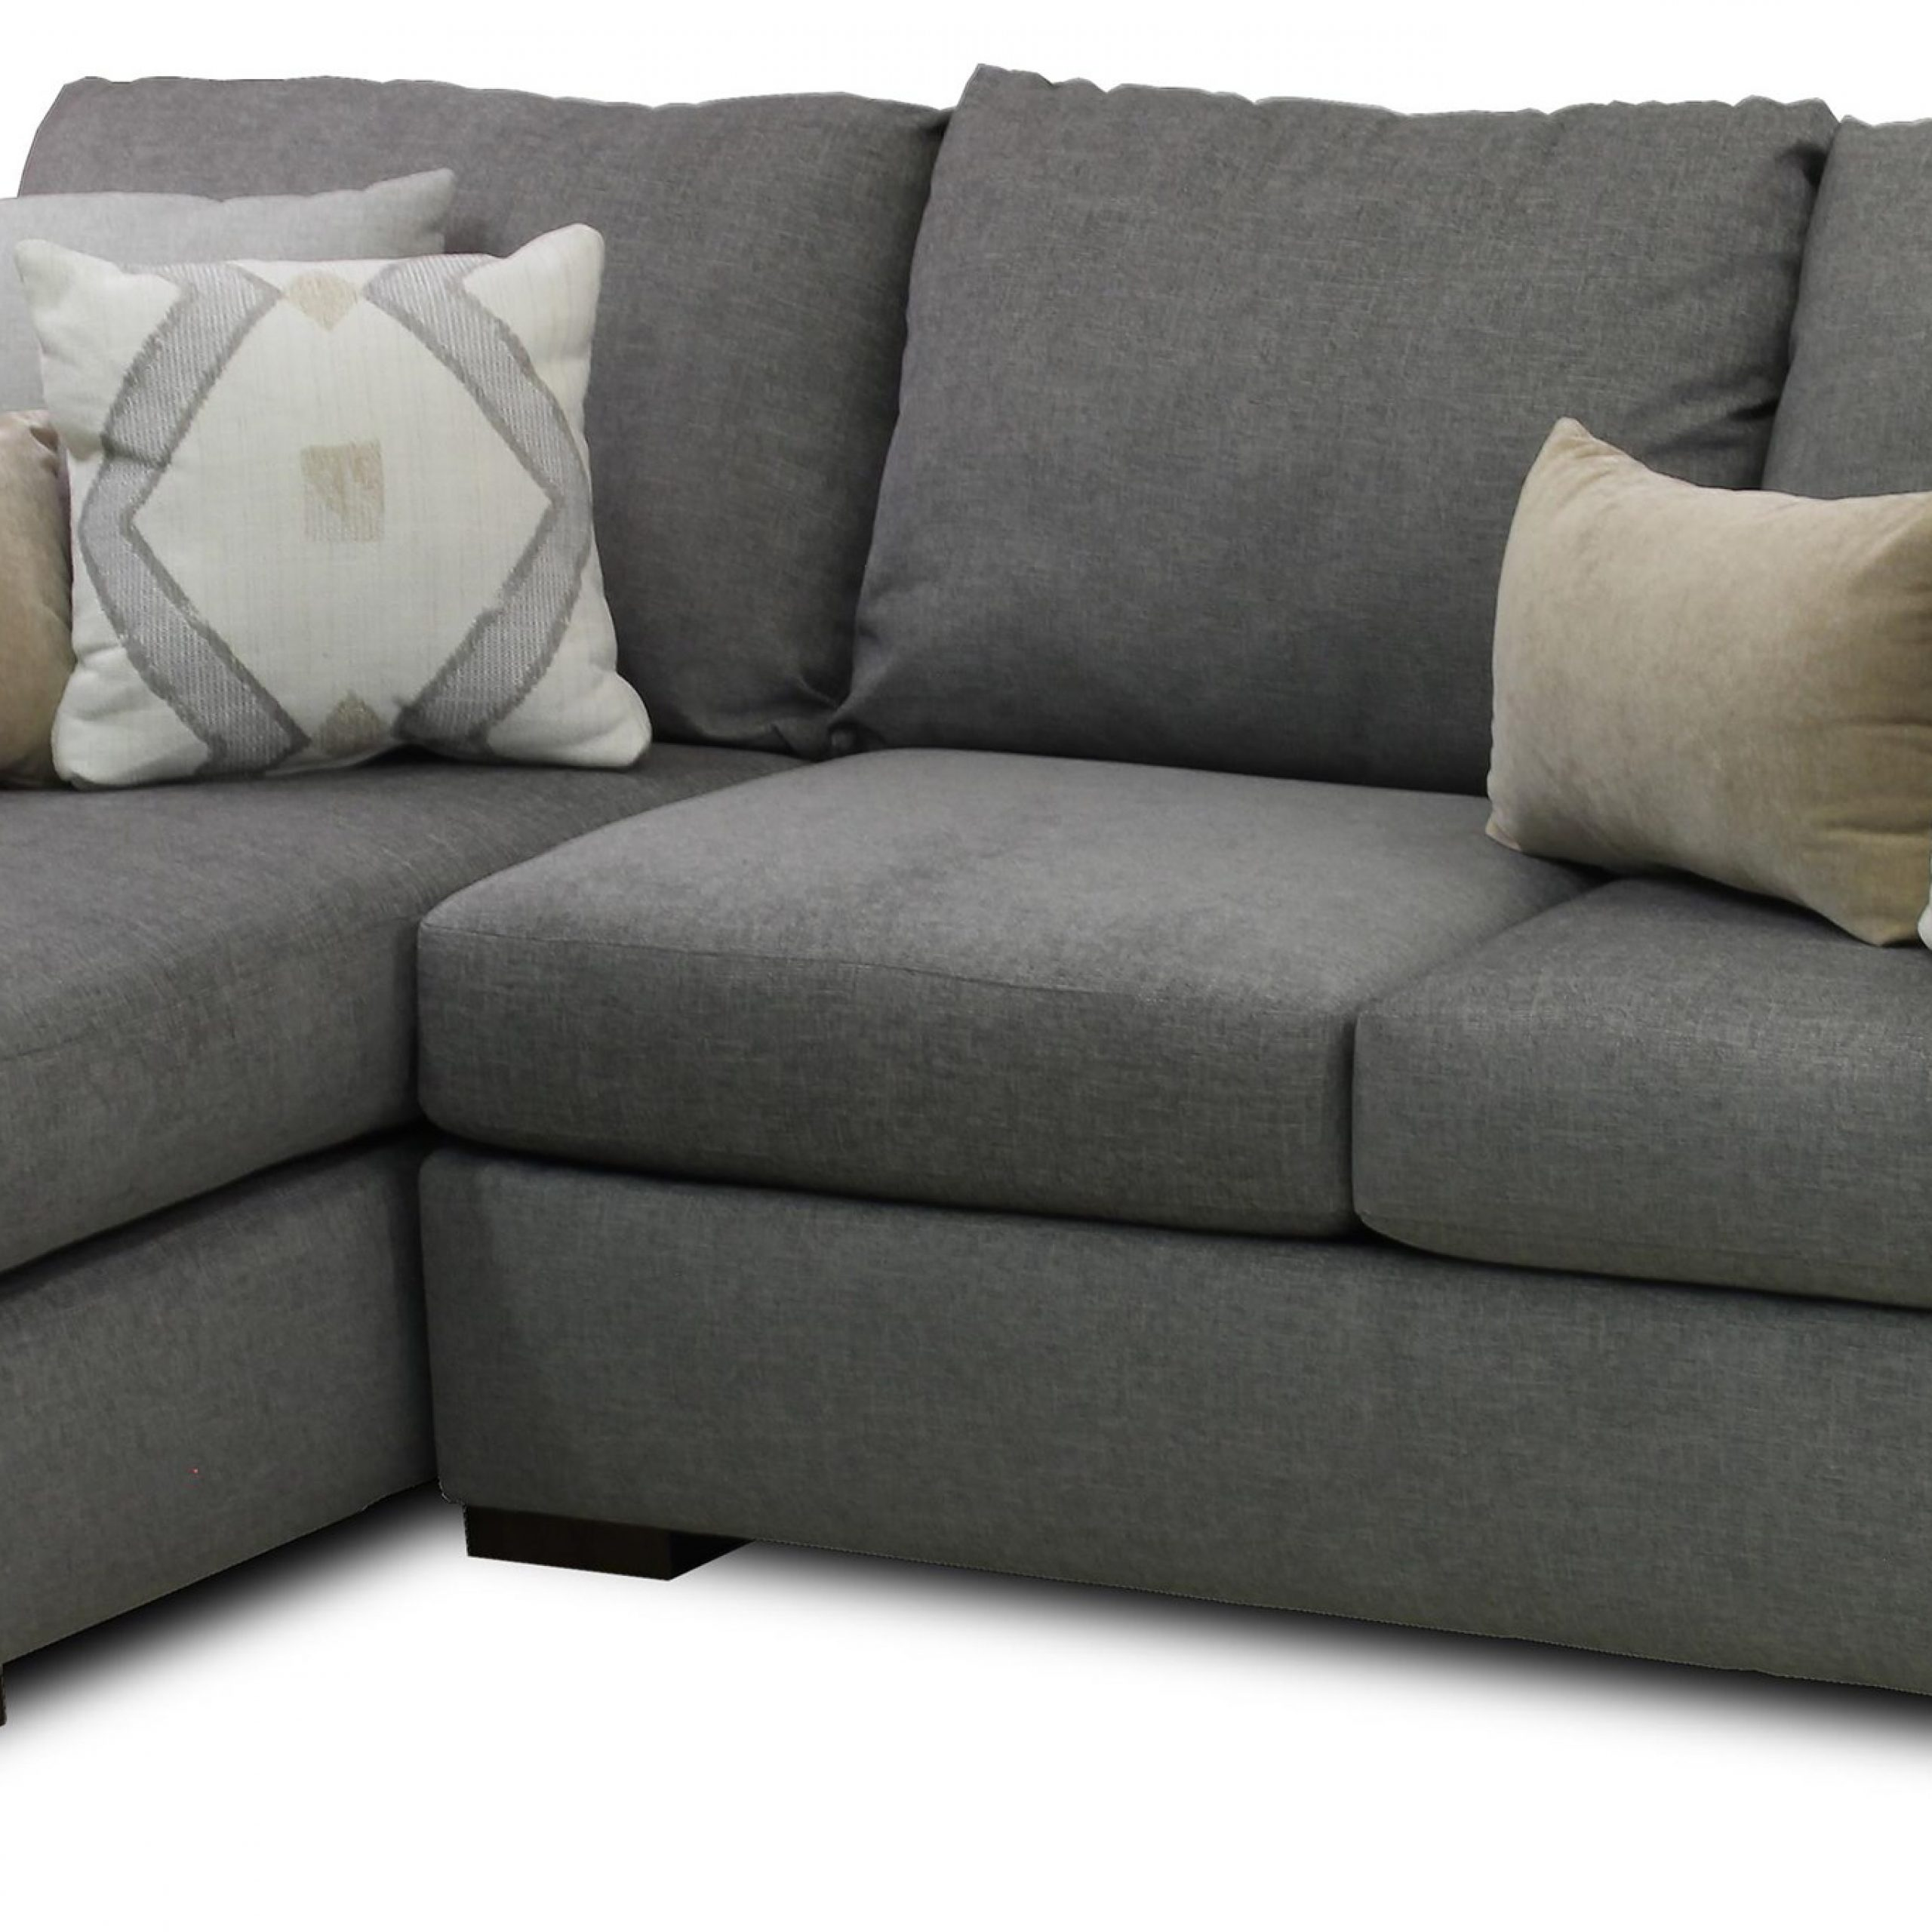 4pc Crowningshield Contemporary Chaise Sectional Sofas With Regard To Current Metropia Coley Contemporary Sectional Sofa With Chaise (View 8 of 20)